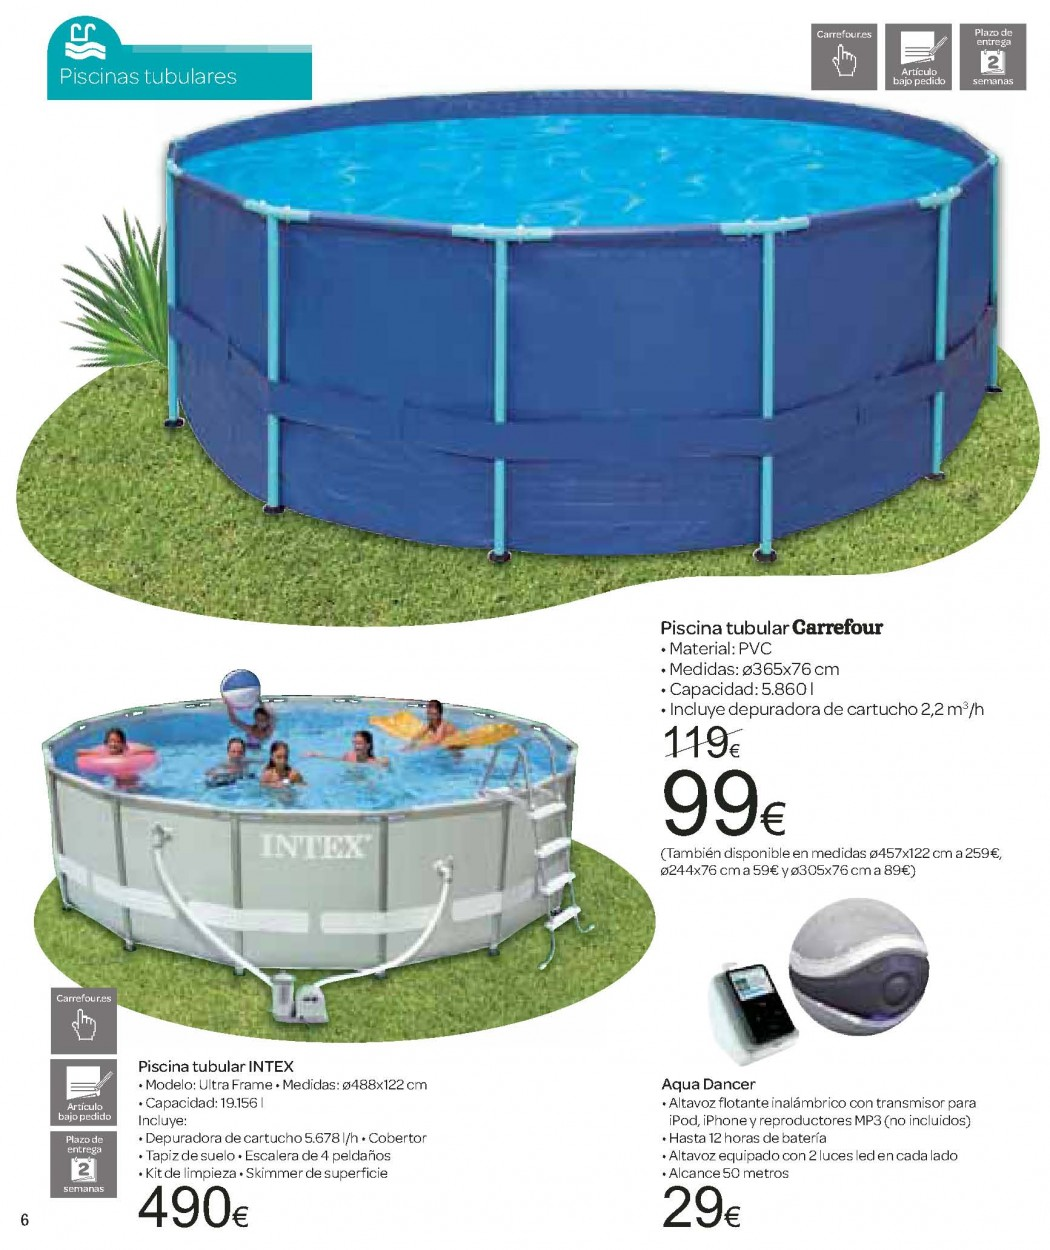 Catalogo carrefour junio 2012 especial piscinas y jardin for Piscinas infantiles carrefour